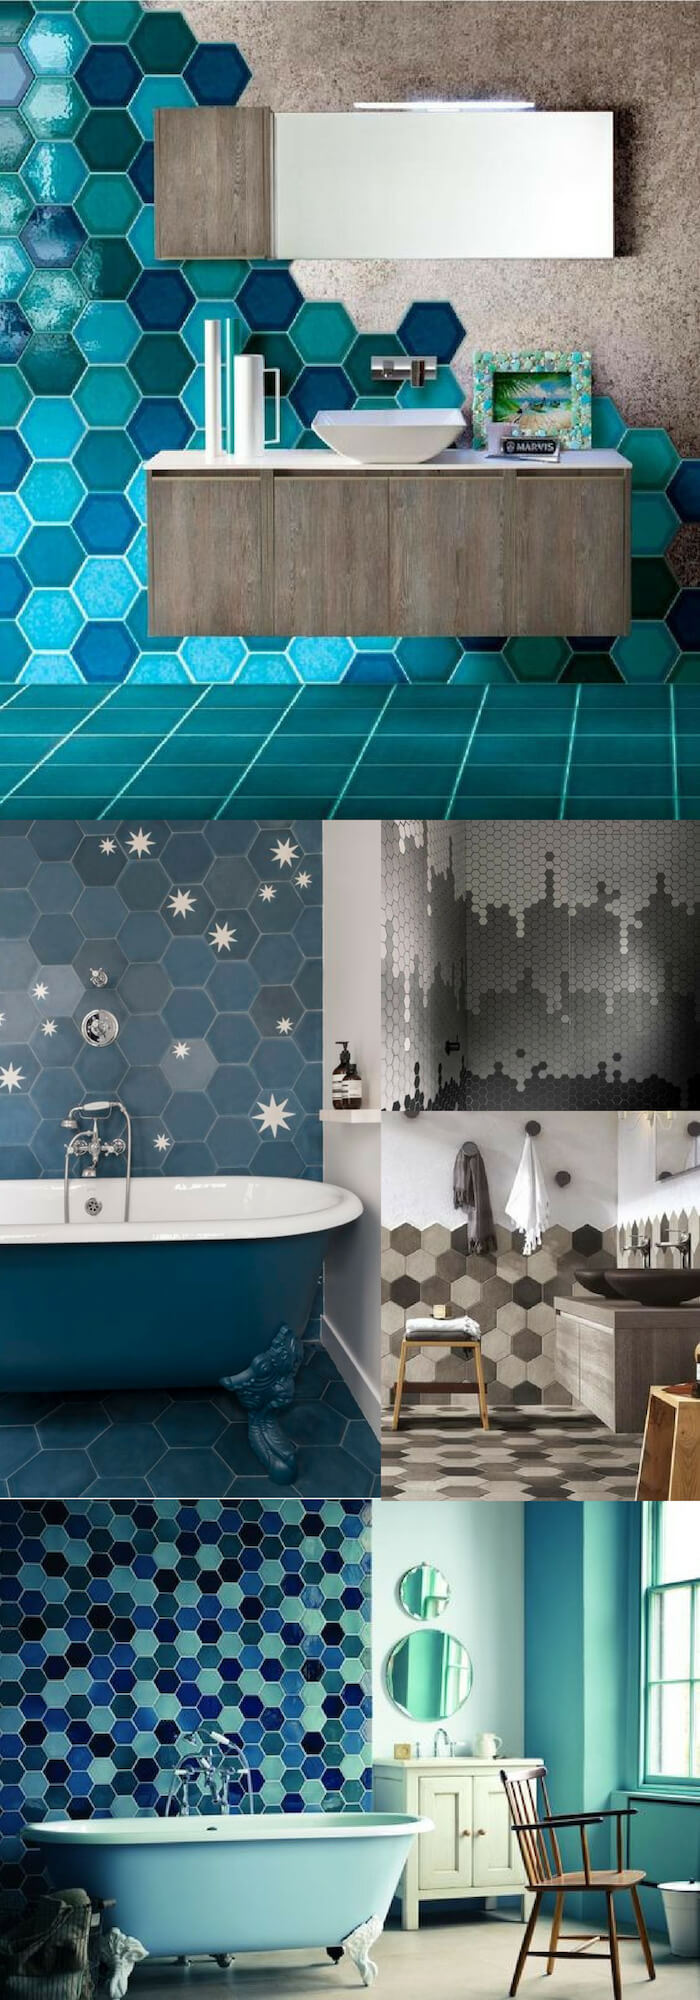 Hexagon wall | Unique Wall Tile Ideas for Bathroom Design